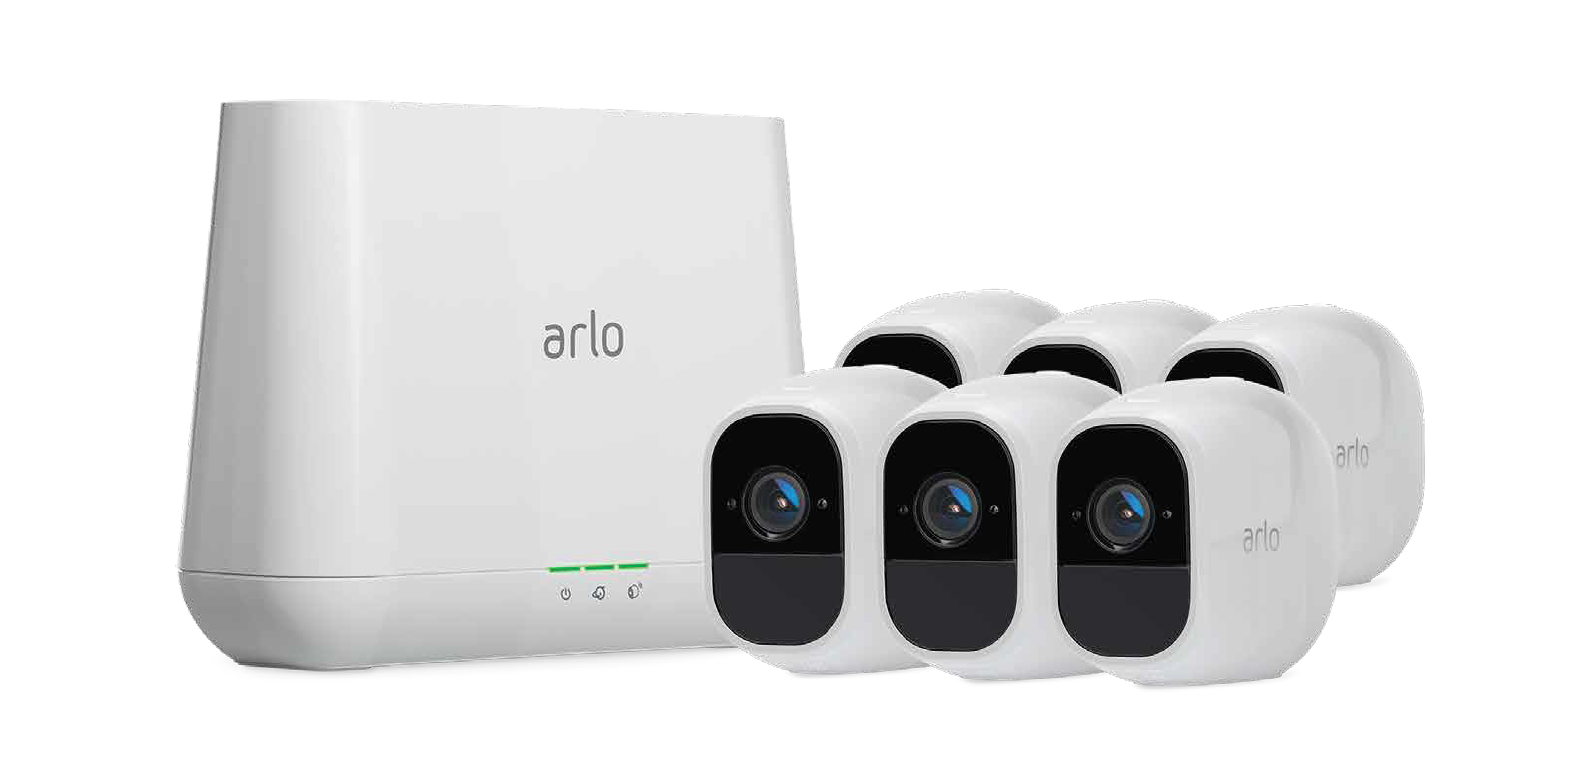 rechargeable wireless security camera arlo pro. Black Bedroom Furniture Sets. Home Design Ideas